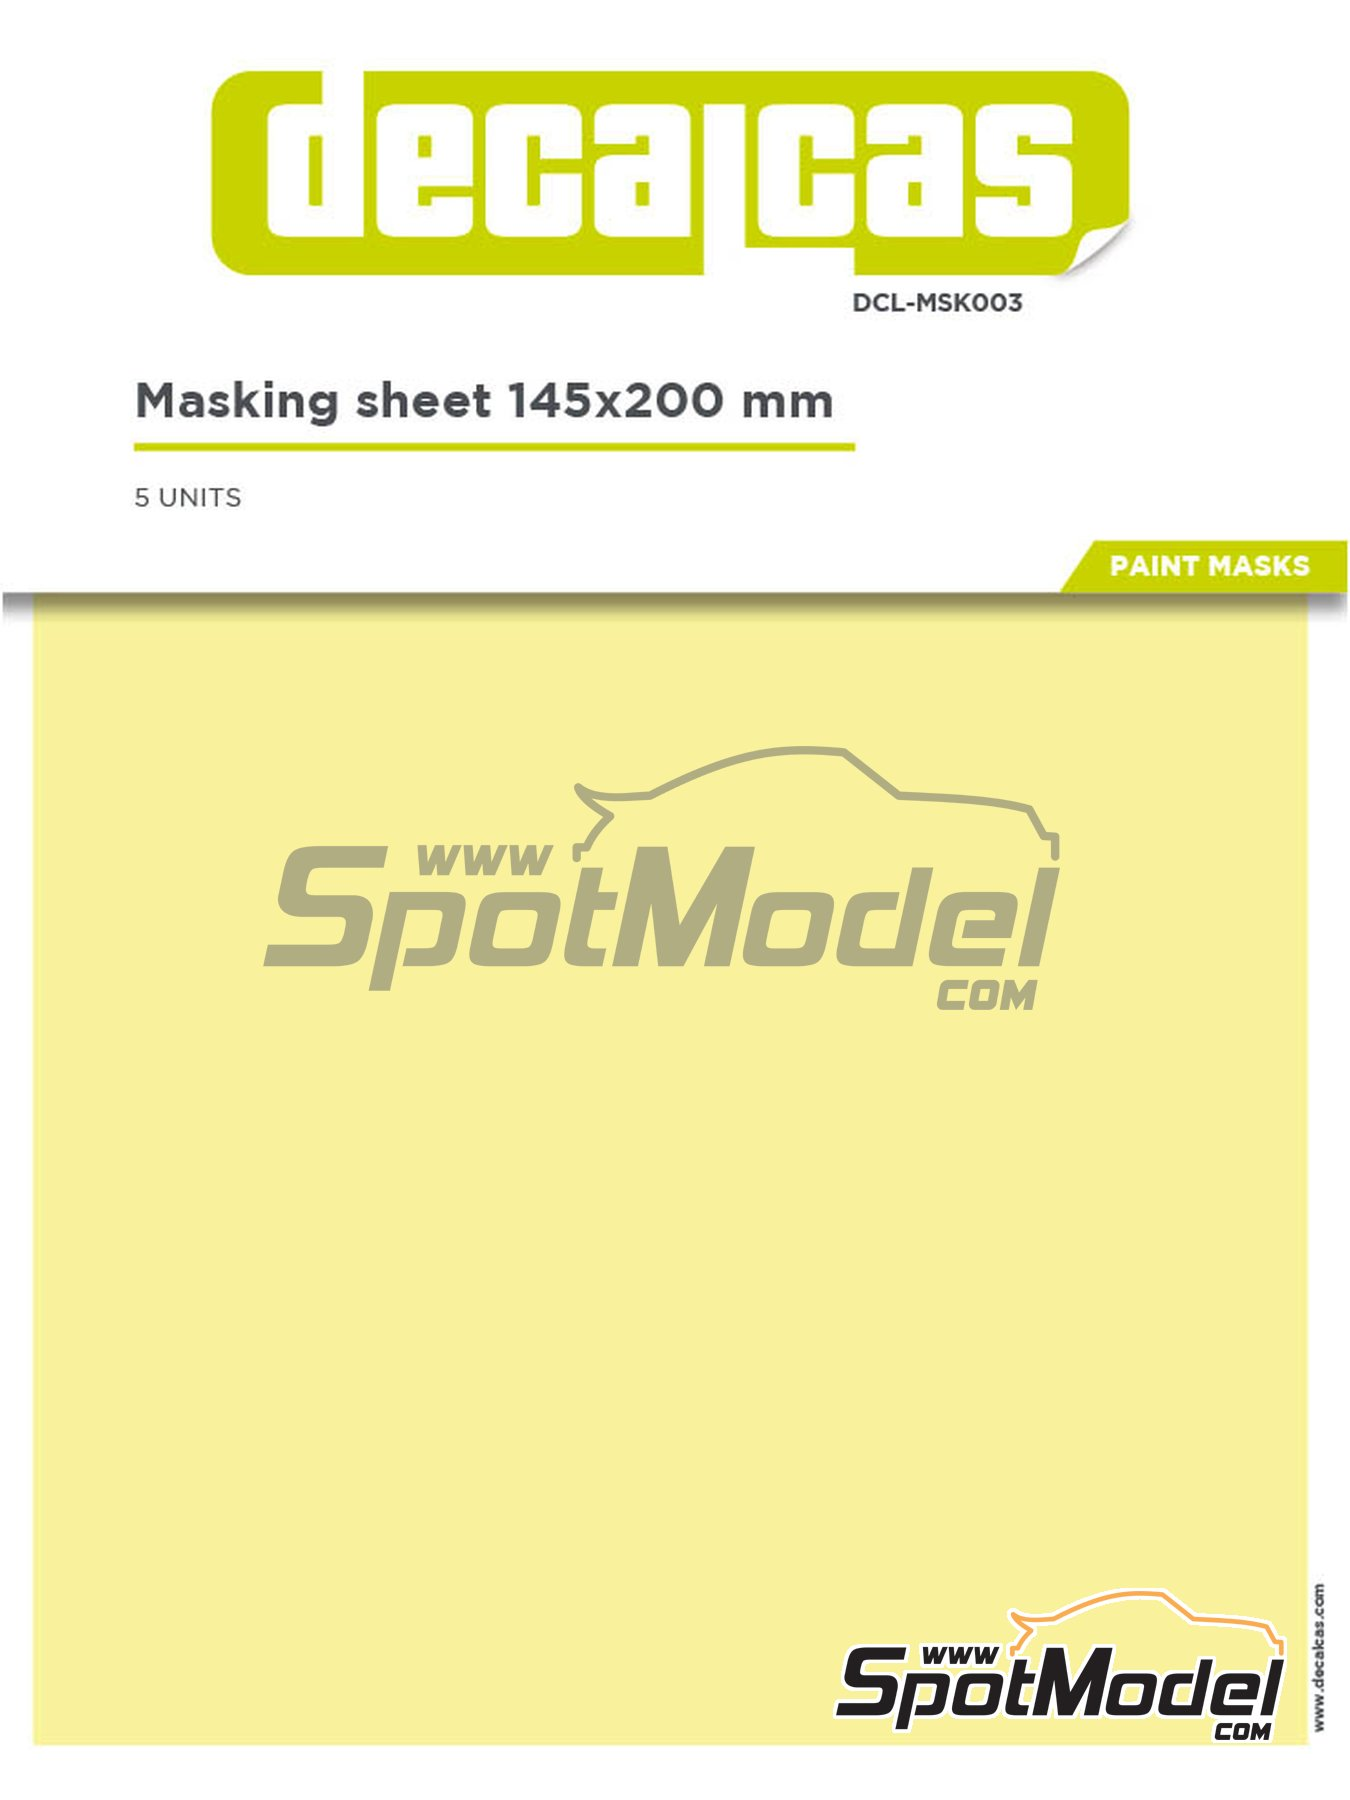 Masking sheets 145 x 200 mm | Masks manufactured by Decalcas (ref. DCL-MSK003) image